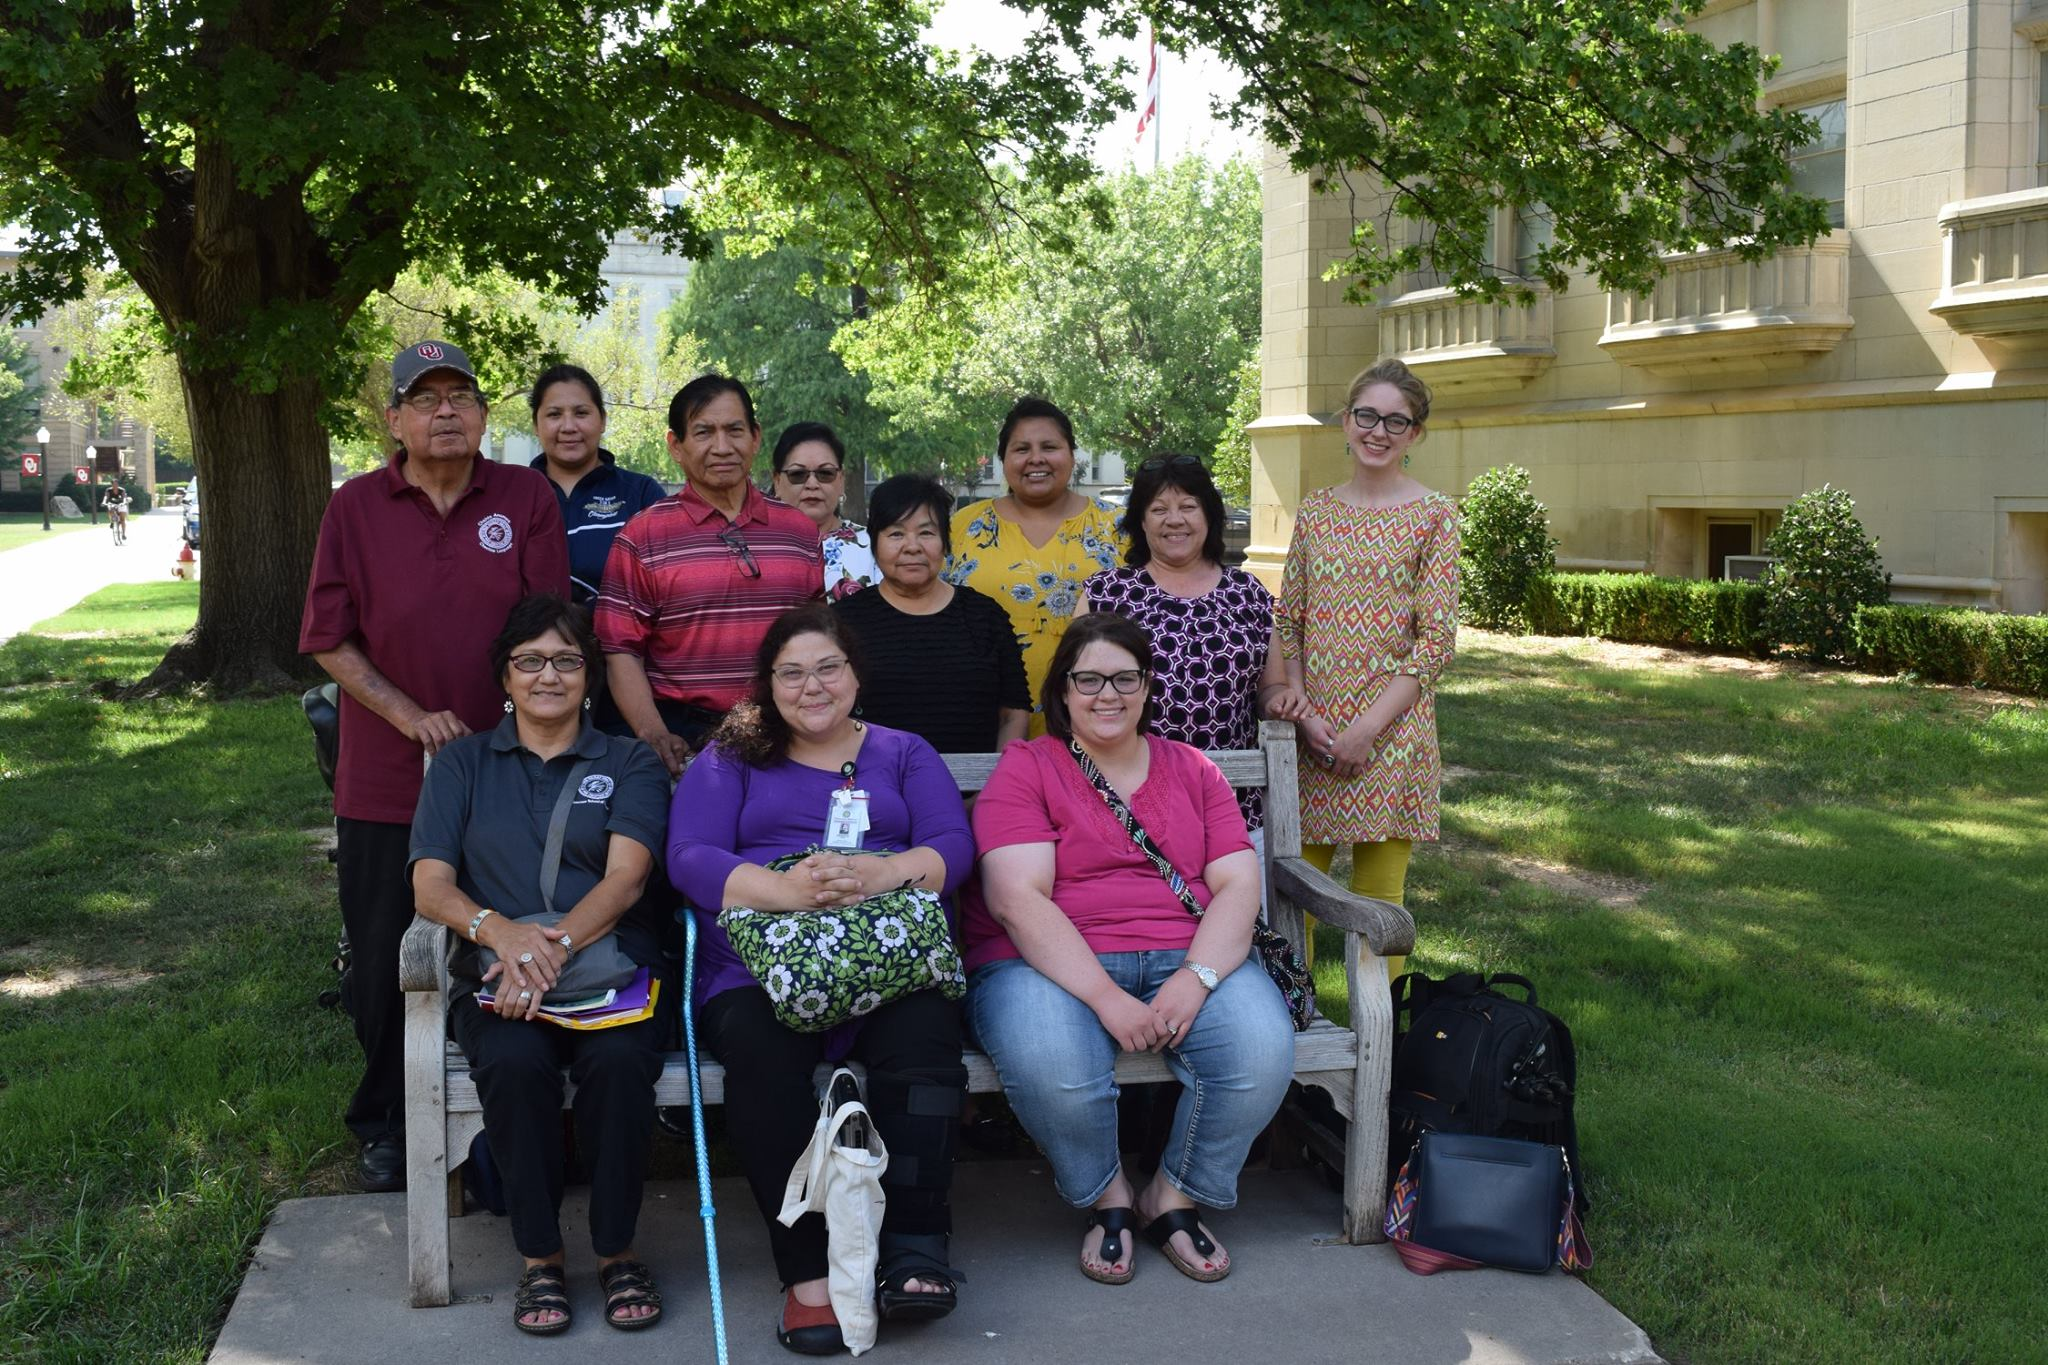 Archiving Culture and Heritage: Choctaw Nation Researchers